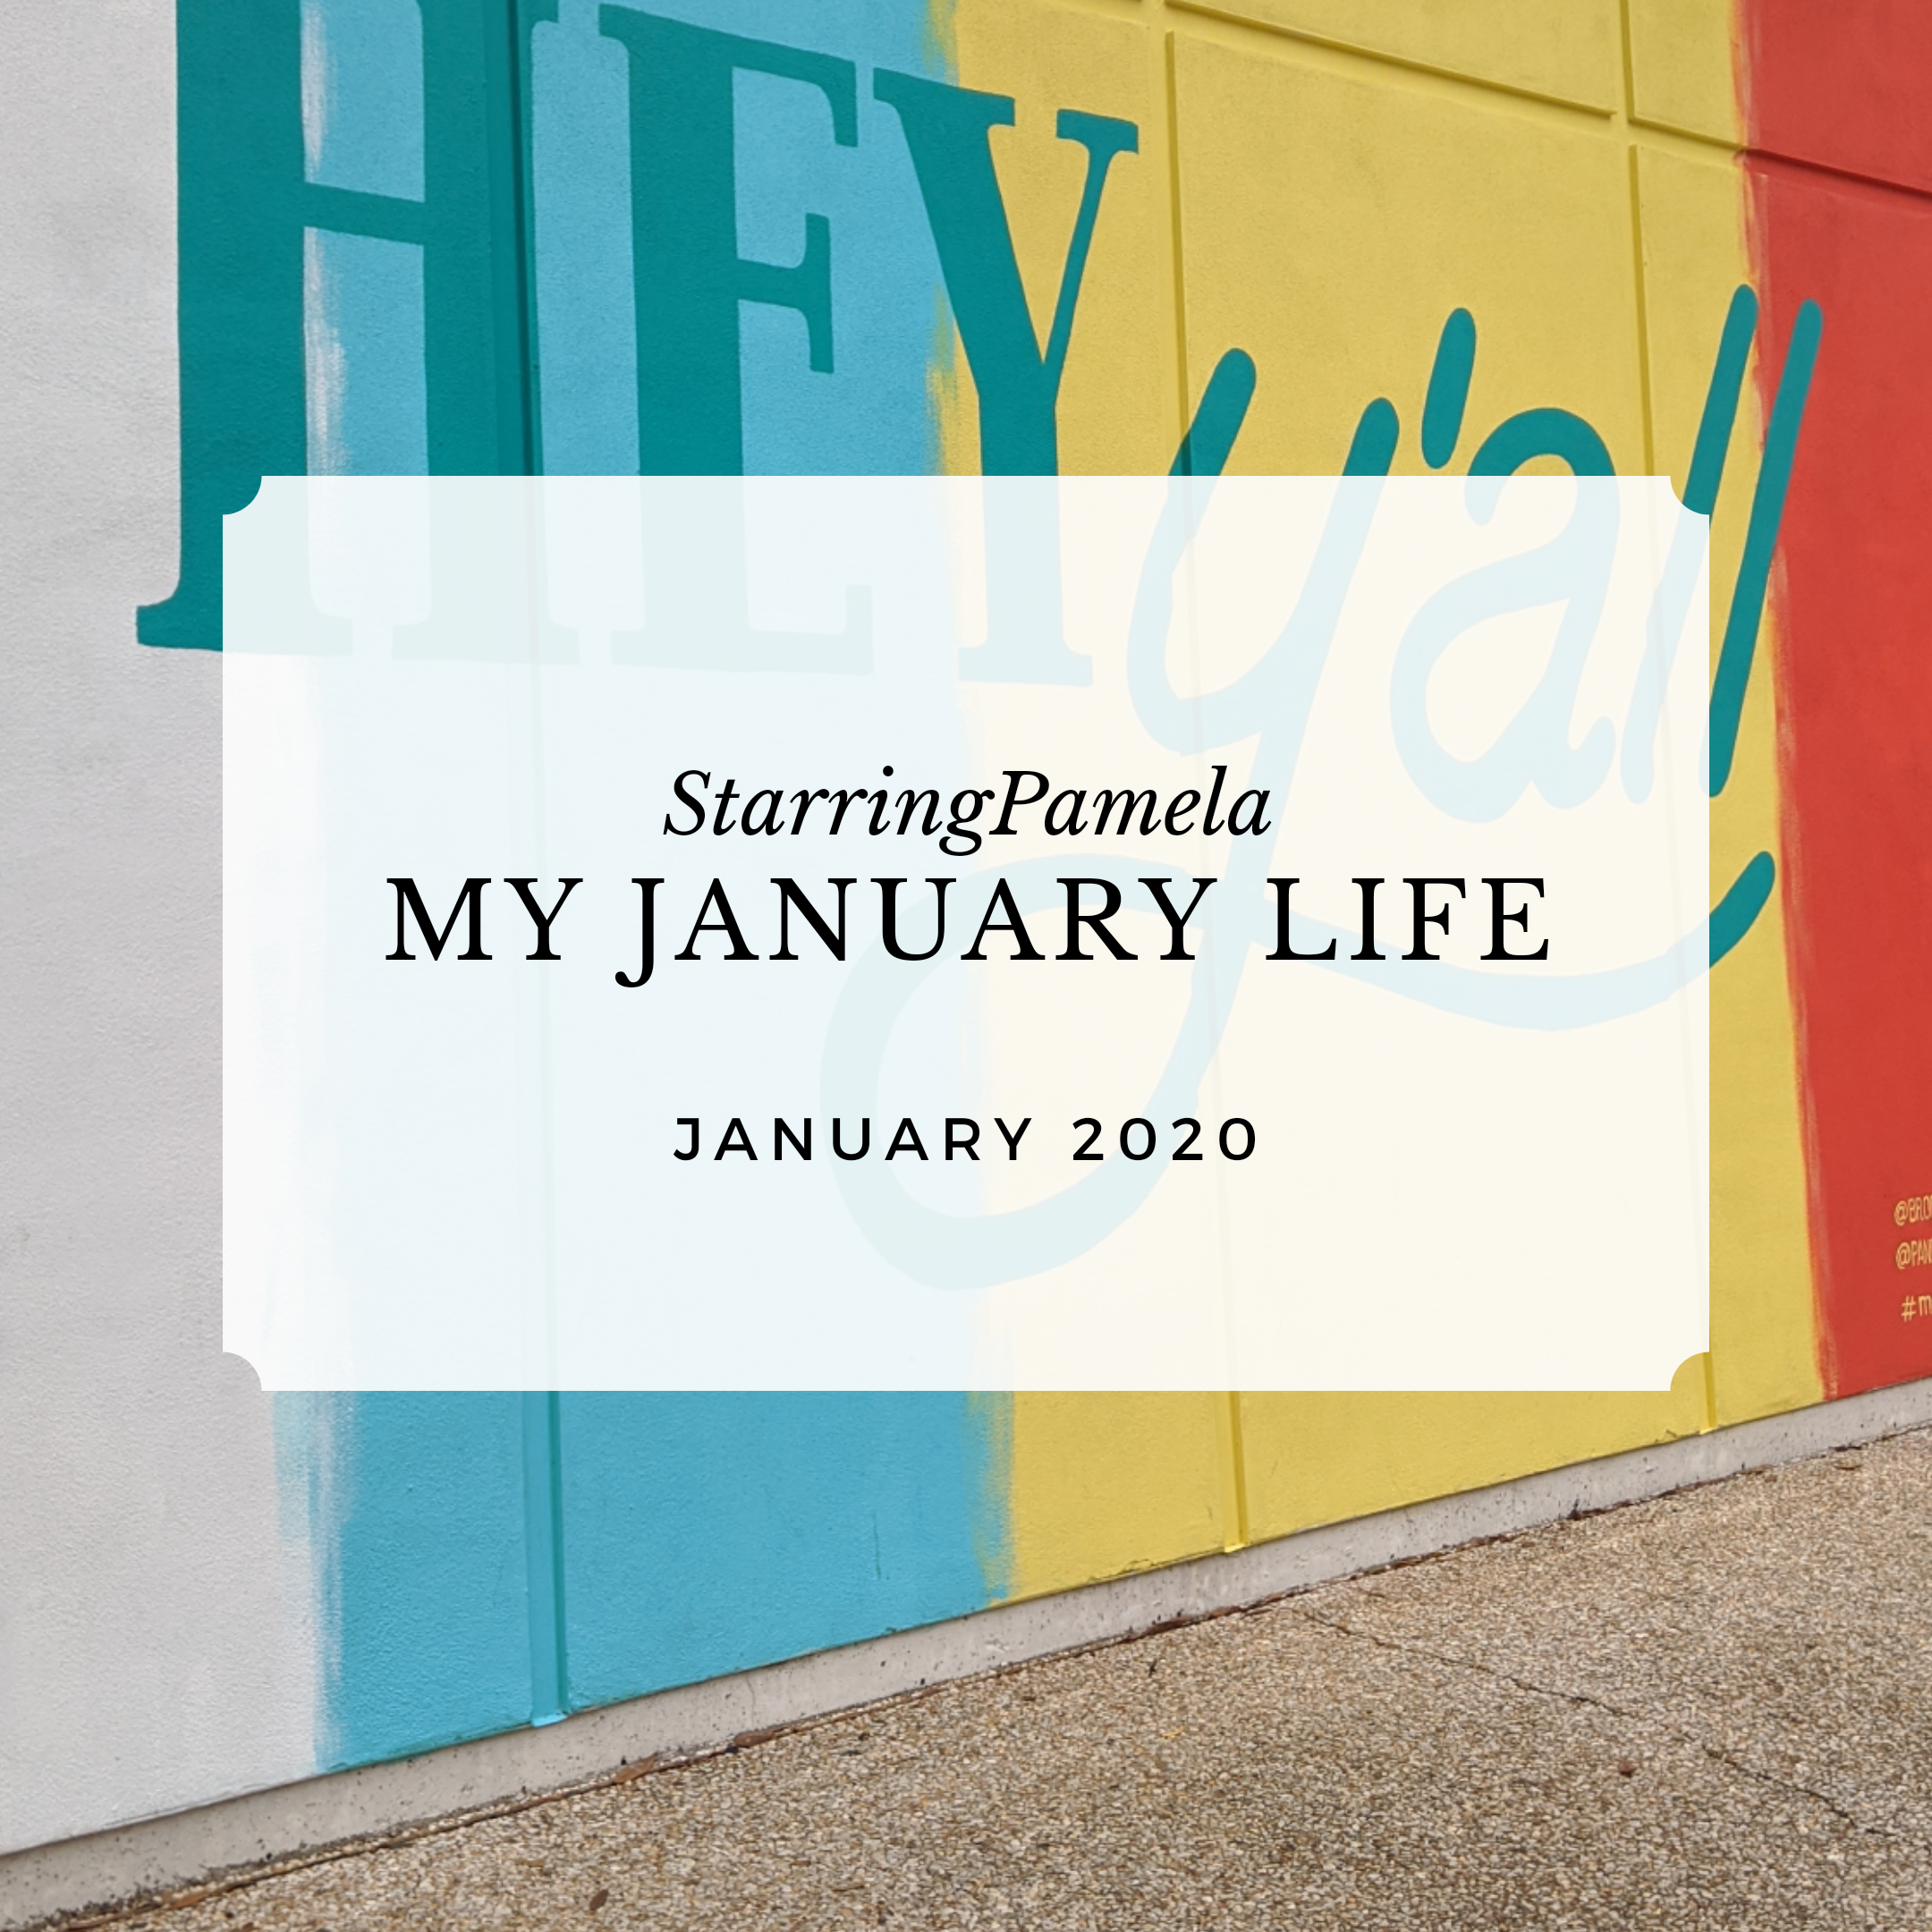 my january life 2020 featured image